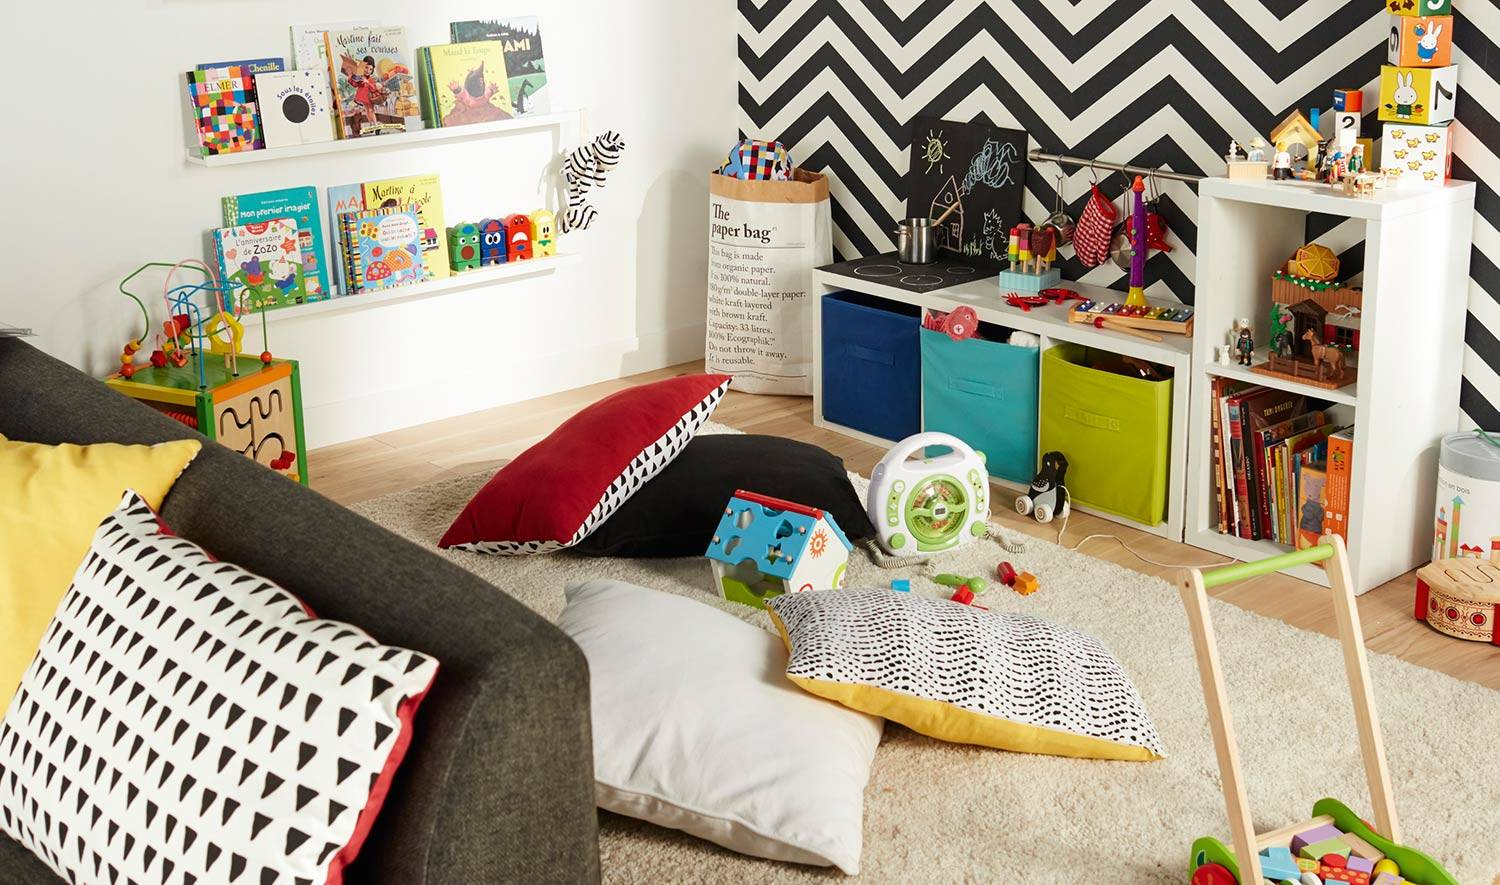 13 id es de biblioth ques pour enfant et de coins lecture. Black Bedroom Furniture Sets. Home Design Ideas